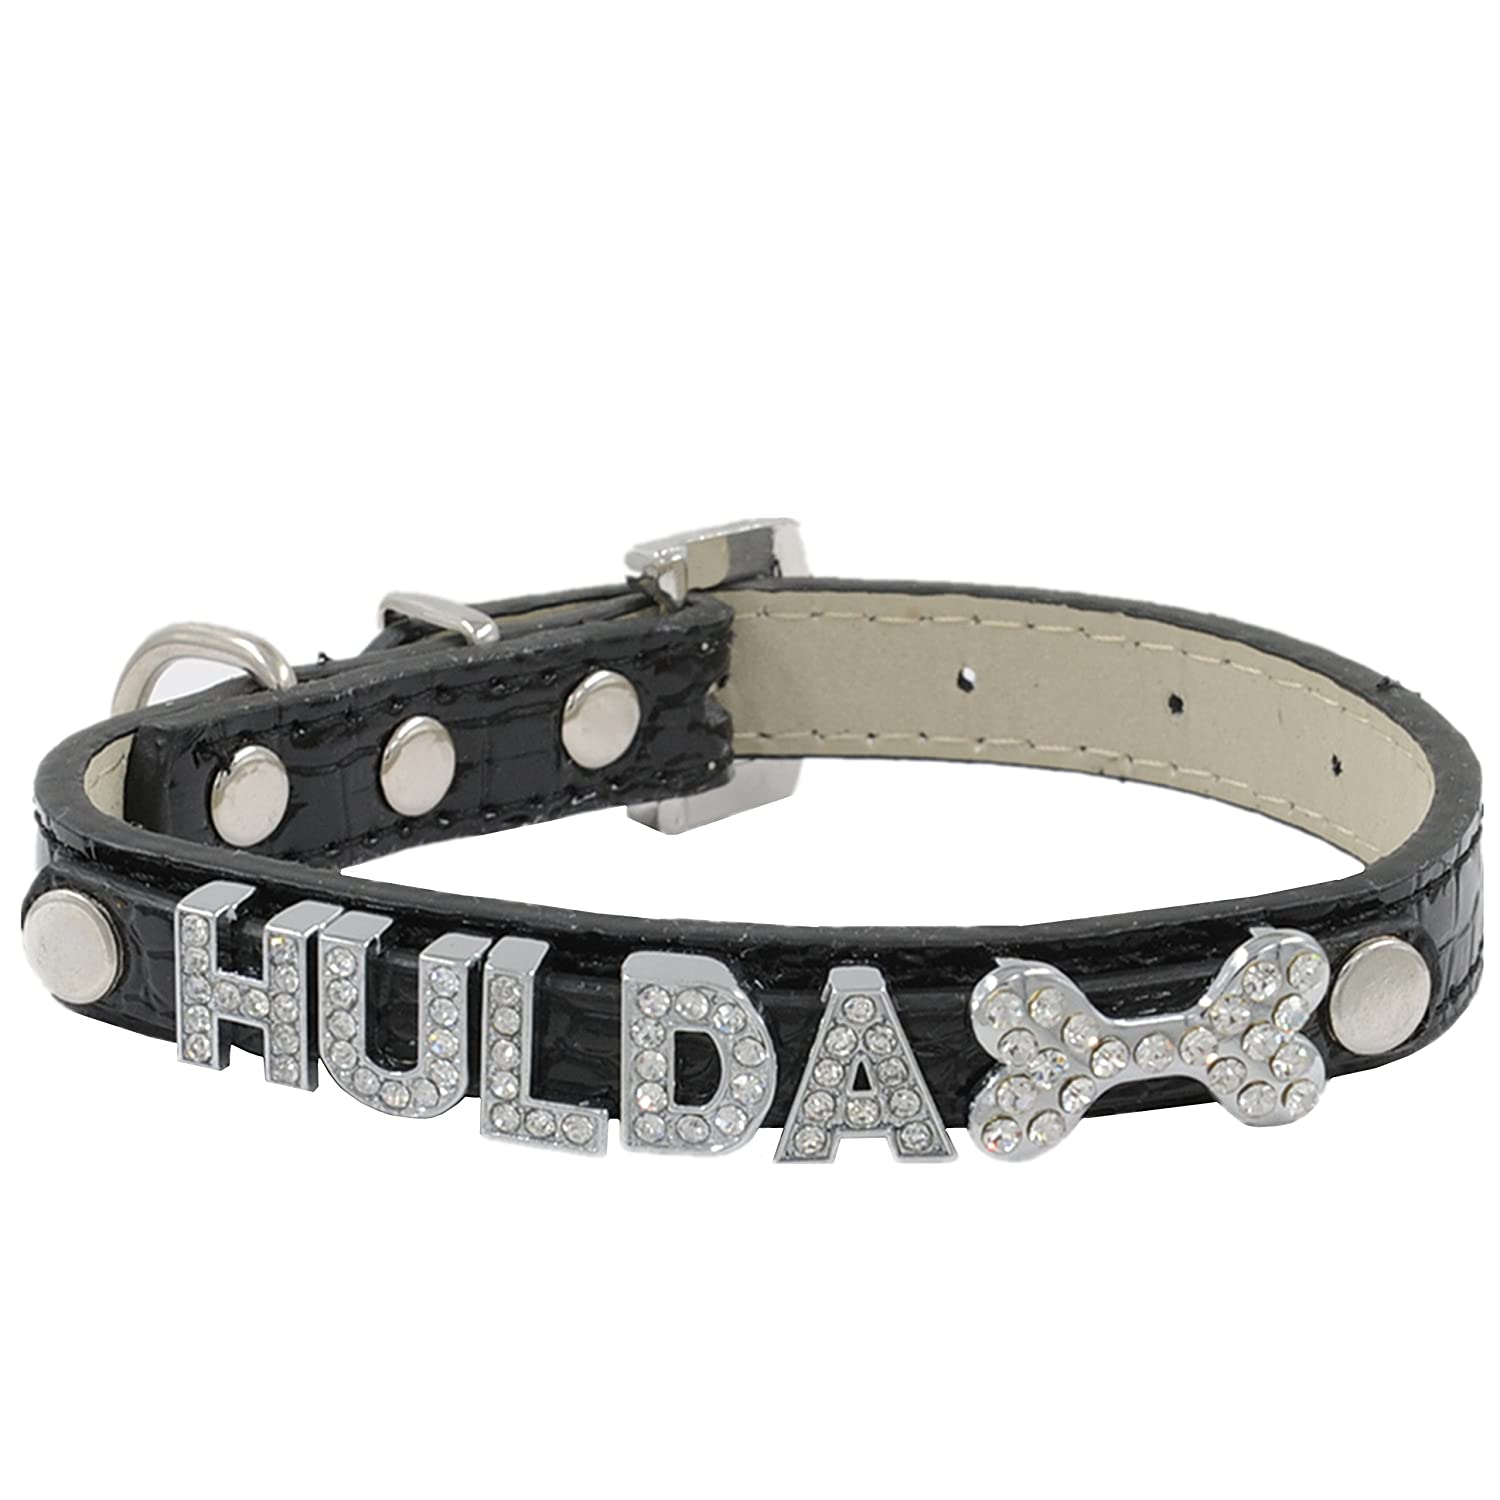 Petholder Personalized Fashion Leather Pet Dog Cat Collar with Rhinestone  Buckle Top Quality Crystal Free Name (up to 6 free letters)   Charm (1 free  charm) ... a2993c17443c